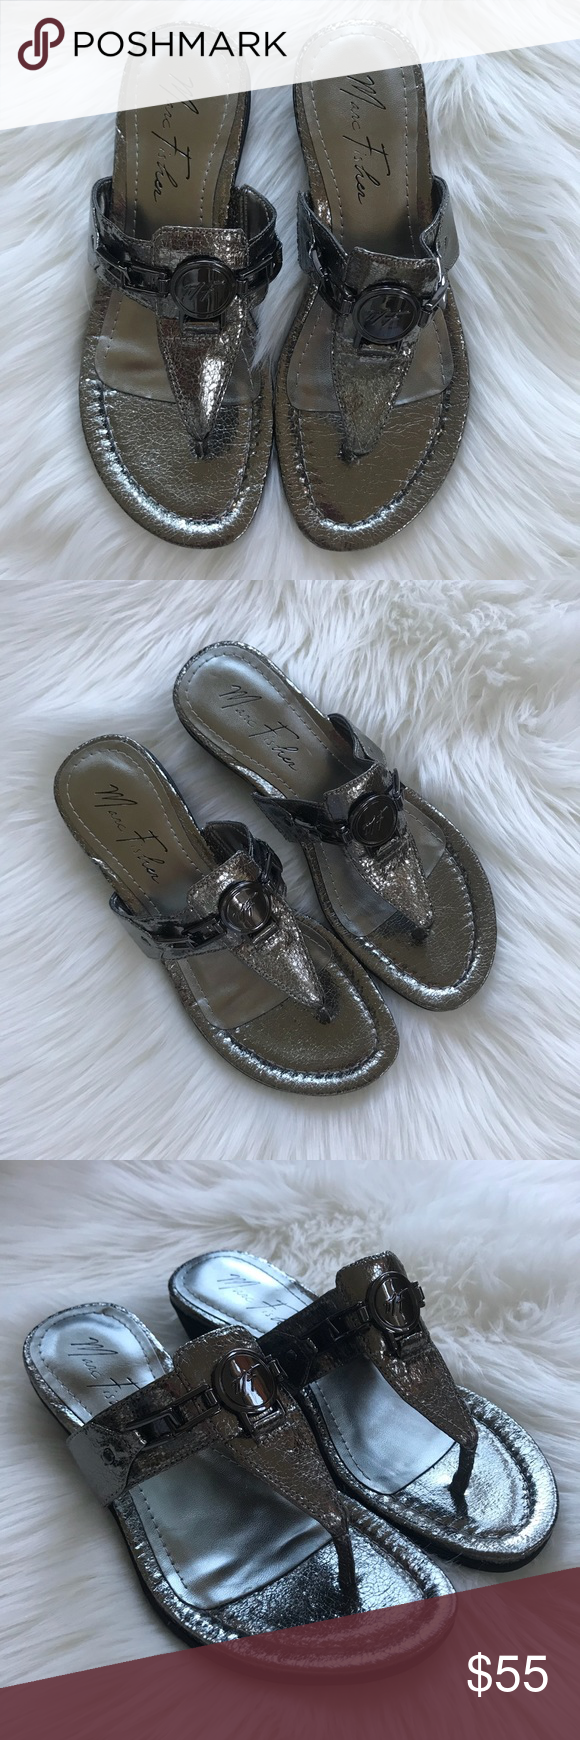 8a8bed7b25d NWOT Marc Fisher Amina Thong Sandal Size 7.5 Beautiful NWOT Amina Thong  Sandals from Marc Fisher. Size 7.5. All man made materials. Good condition.